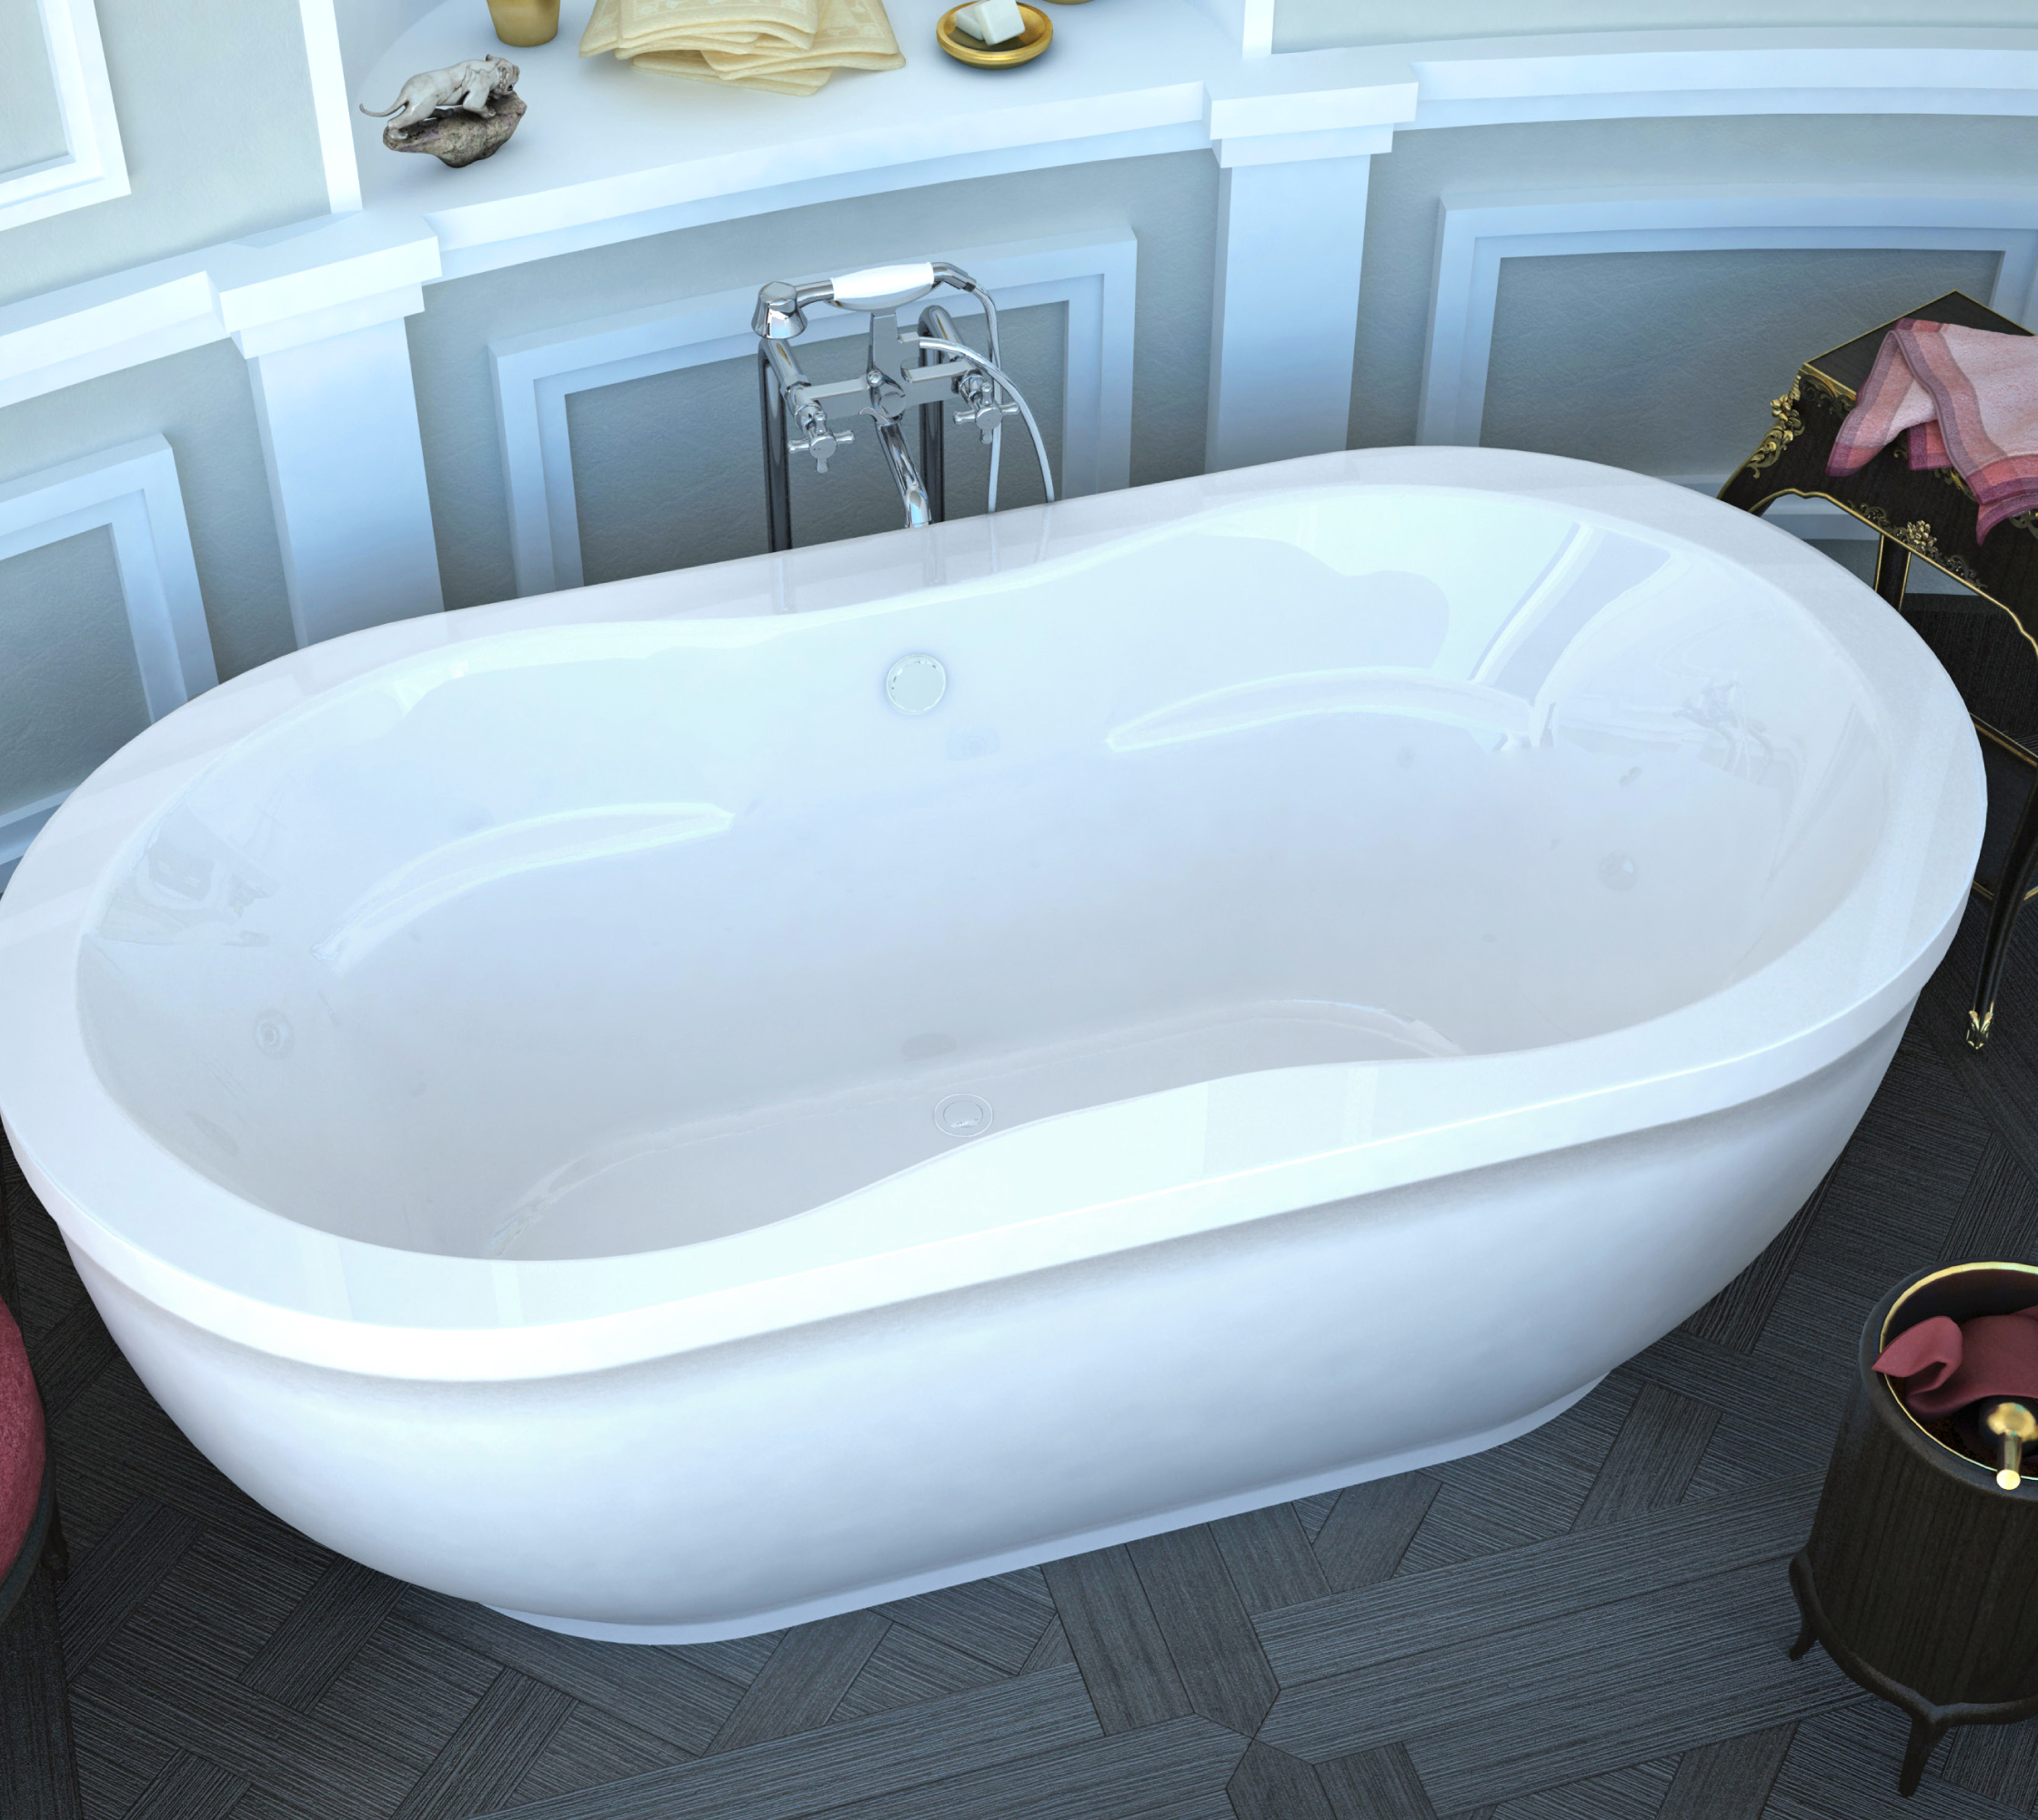 Freestanding Tubs Whirlpool Tubs Bathtubs - Free standing jetted soaking tub